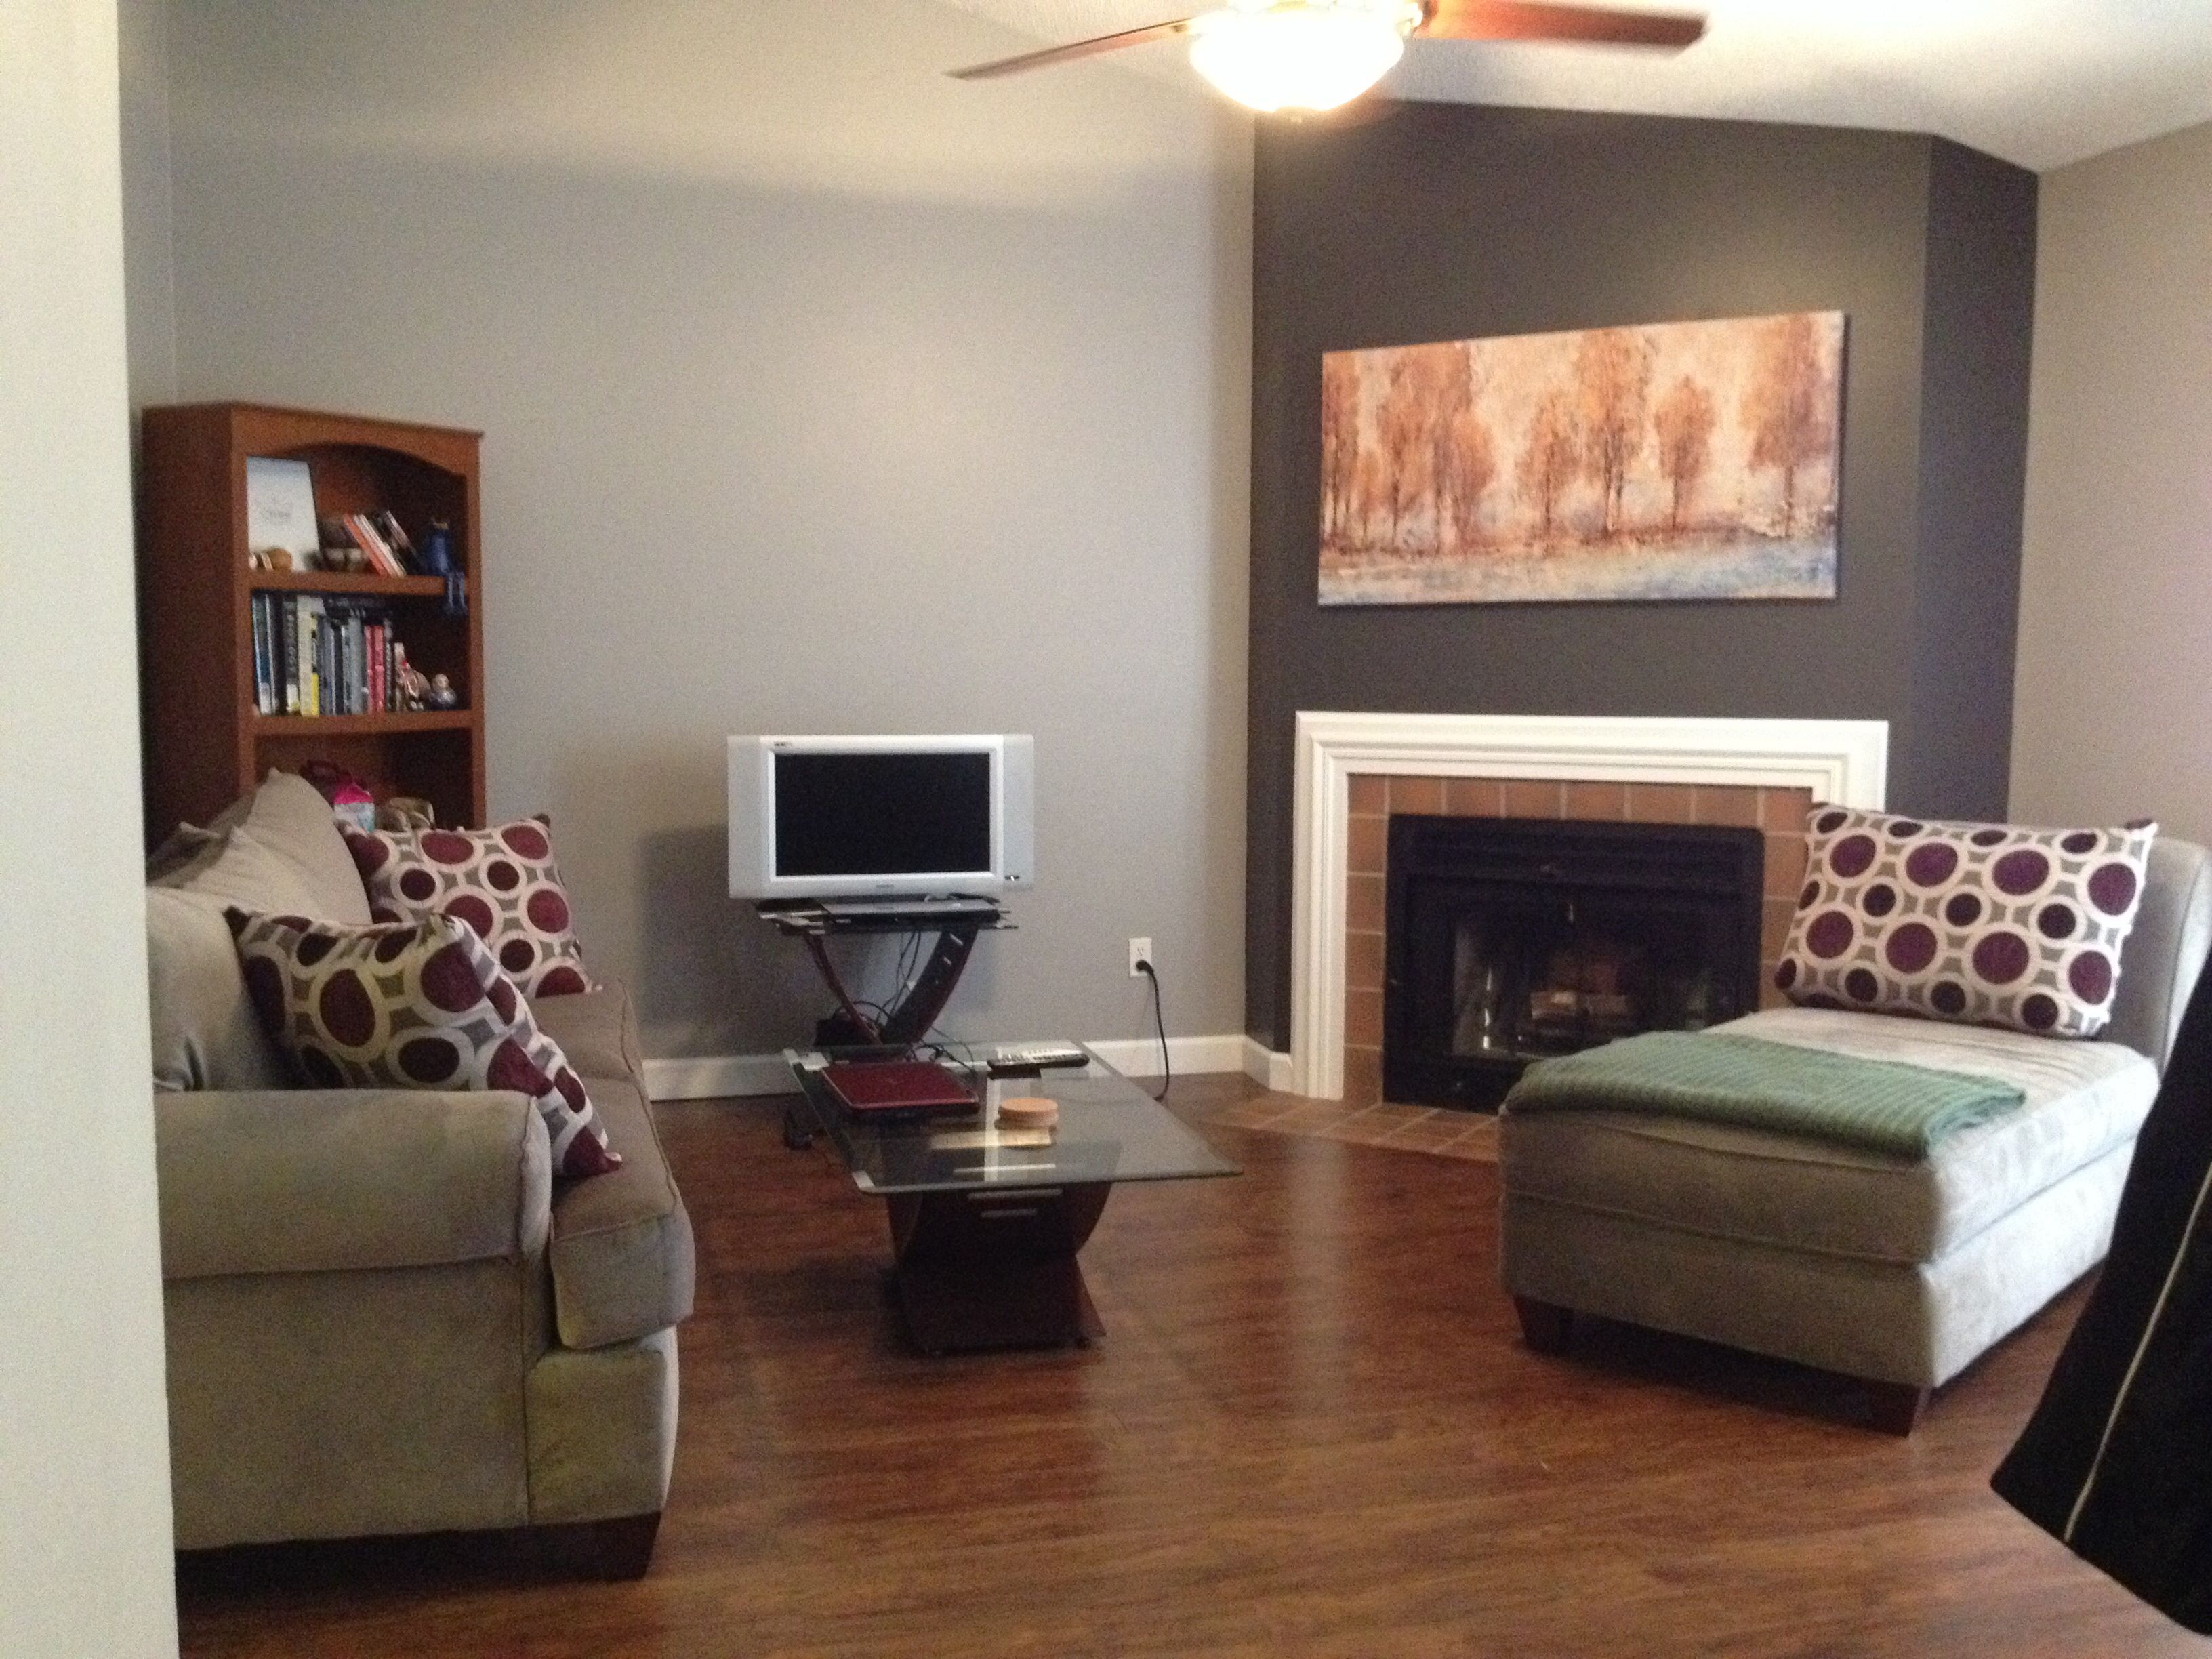 Painting Accent Walls In Living Room This Is My Finished Living Room Paint Job I Love The Cozy Modern